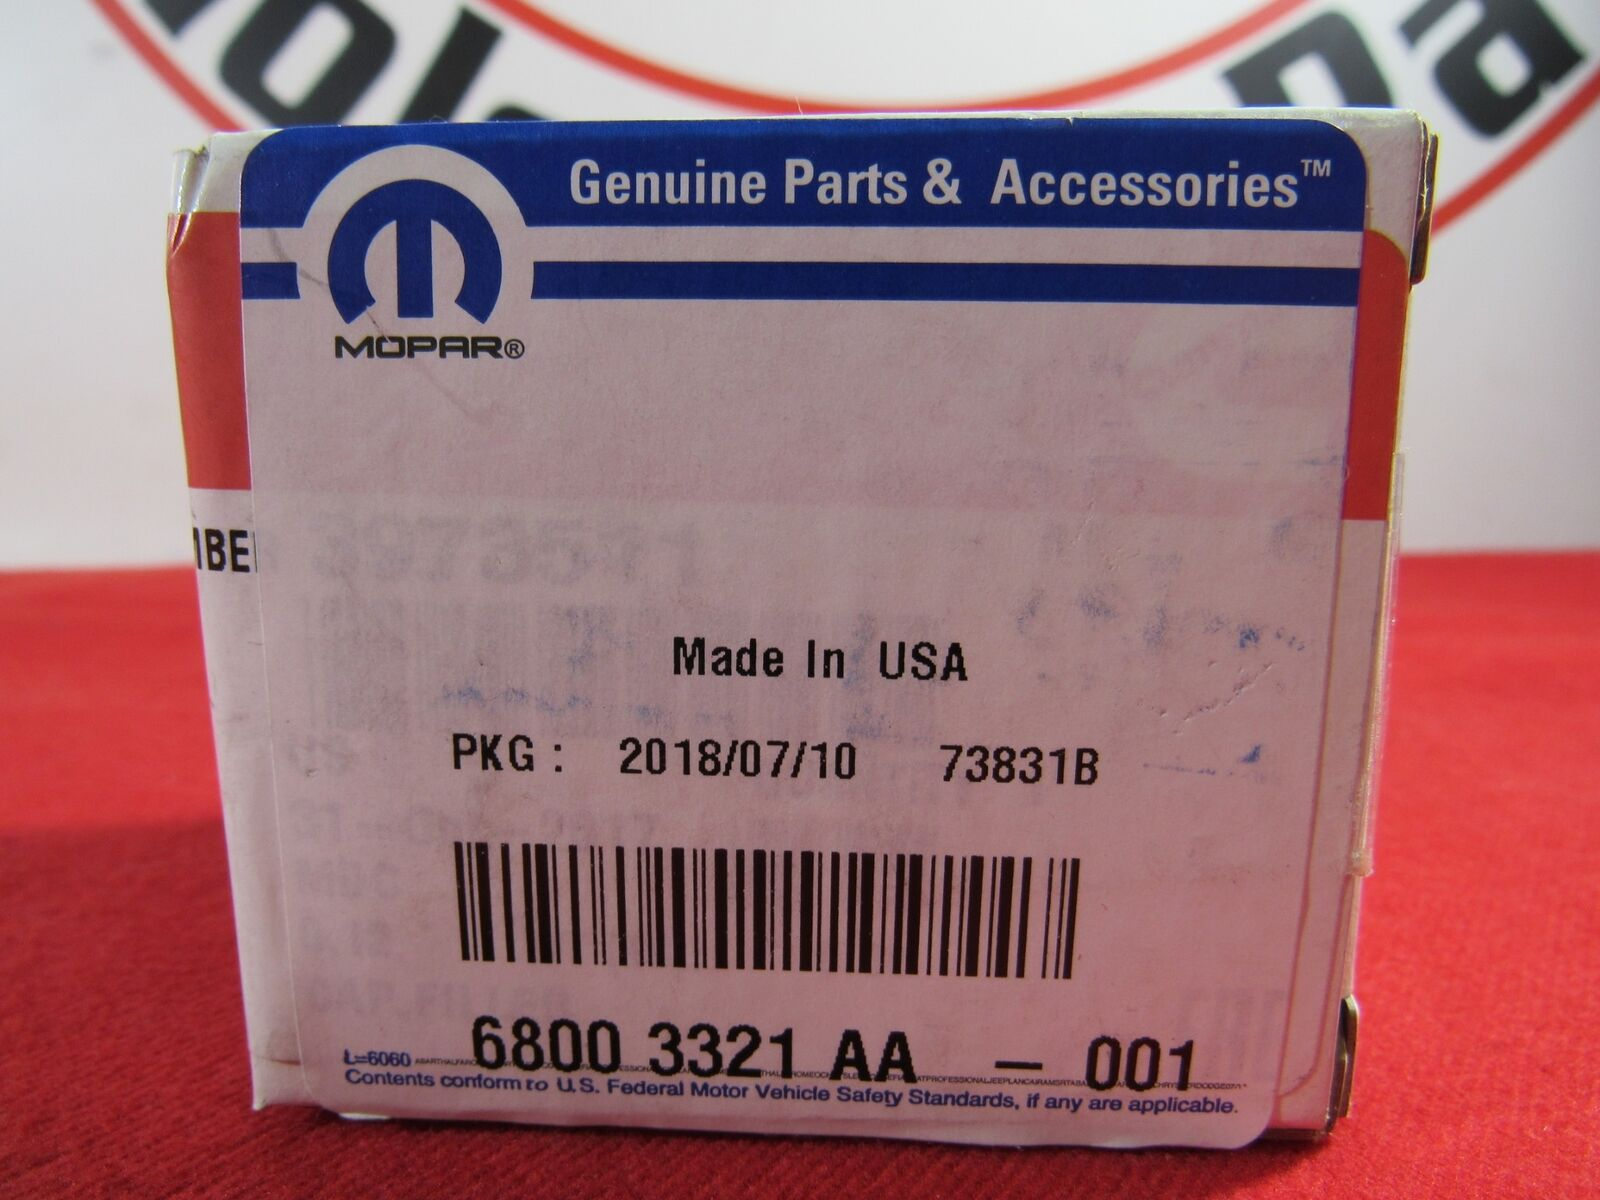 Genuine Chrysler 68003321AA Oil Filler Cap